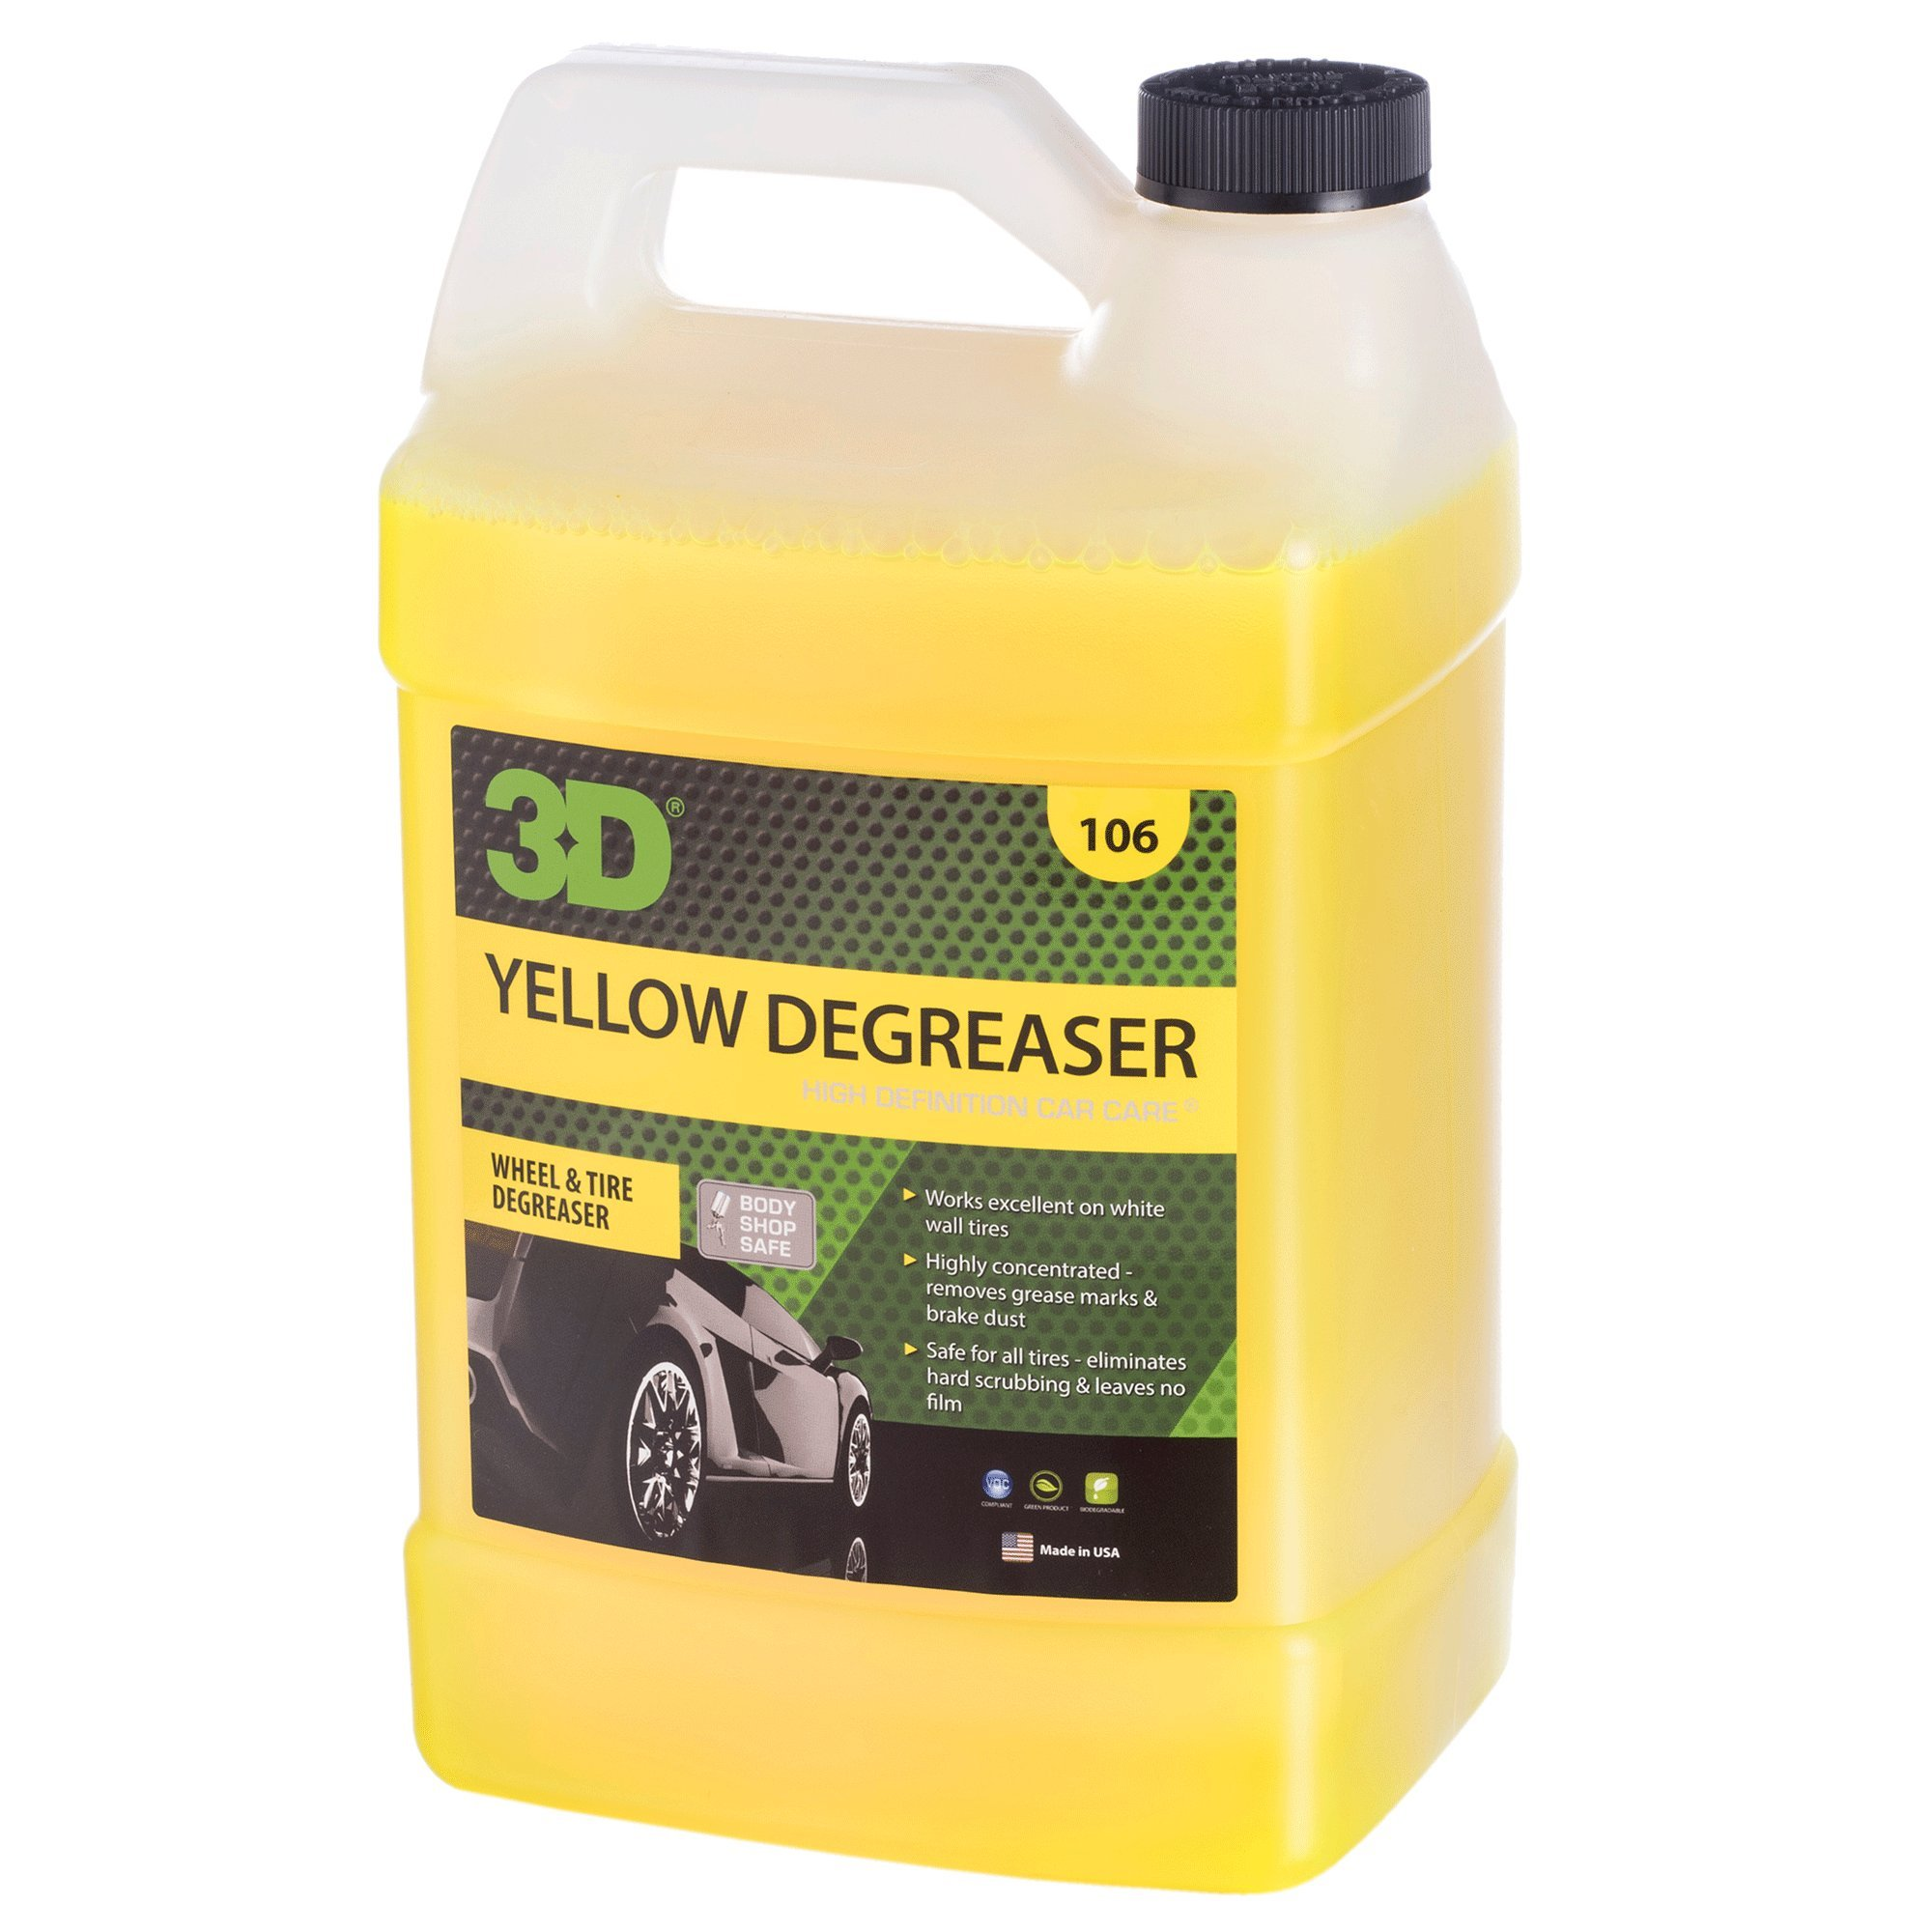 3D Yellow Degreaser Wheel & Tire Cleaner - 1 Gallon | Highly Concentrated Degreaser & Cleaner | Safe for All Tires | Removes Grease & Brake Dust | Made in USA | All Natural | No Harmful Chemicals